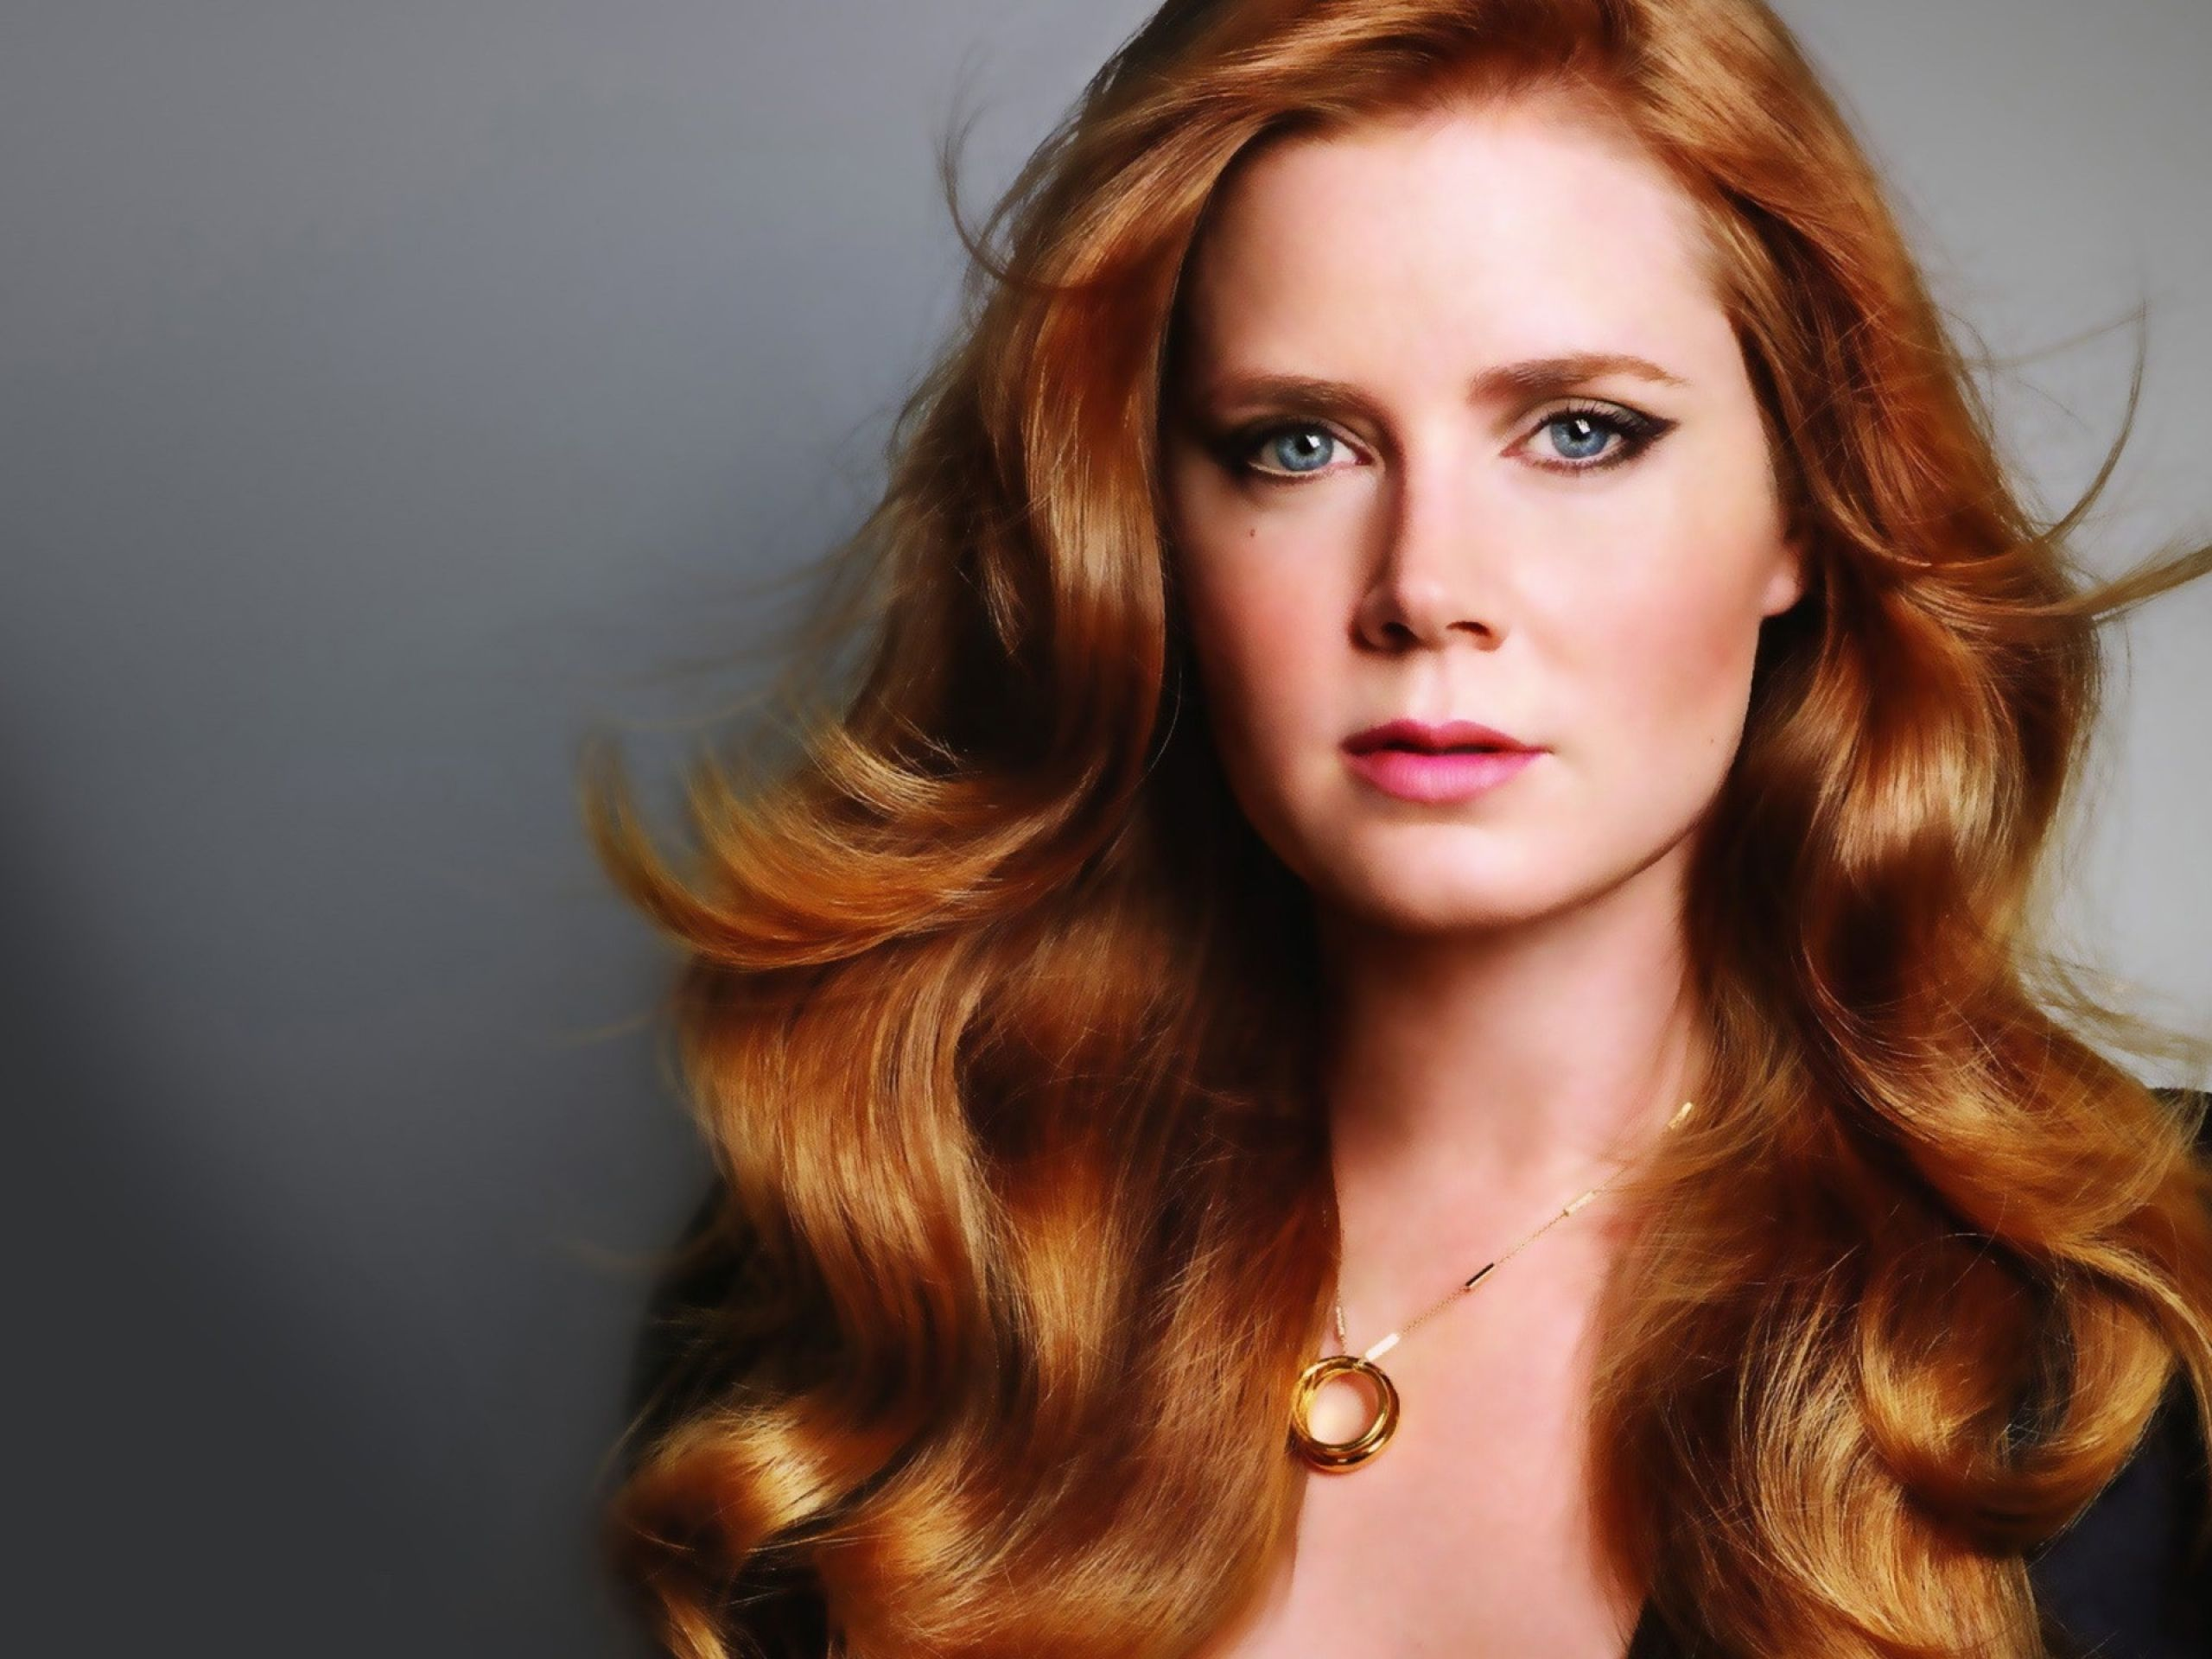 Women Blue Eyes Actress Redheads Amy Adams Faces Wallpaper Honey Blonde Hair Amy Adams Hair Hair Color Auburn